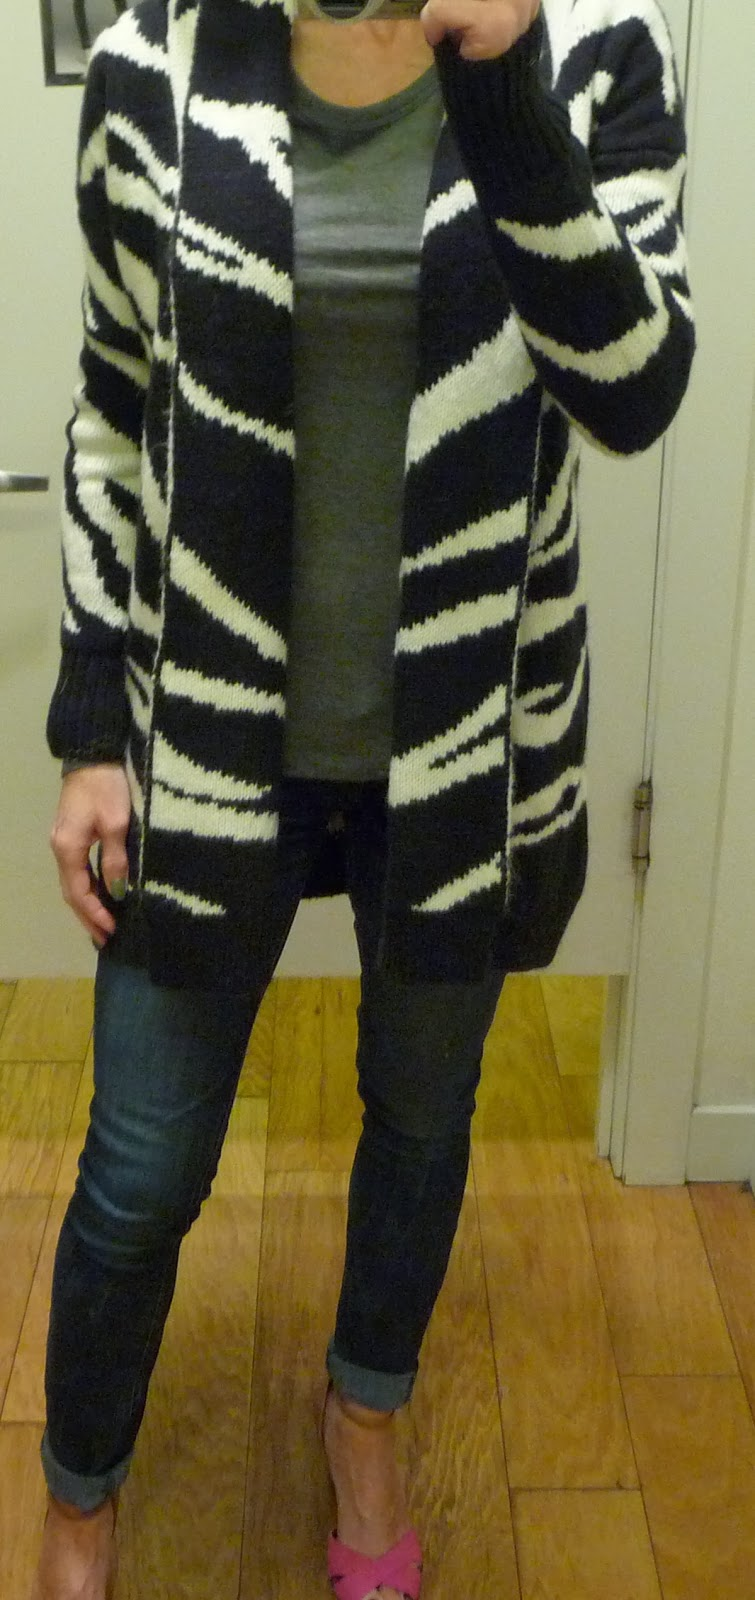 Express tiger stripe sweater coat, wool, oversize, animal print